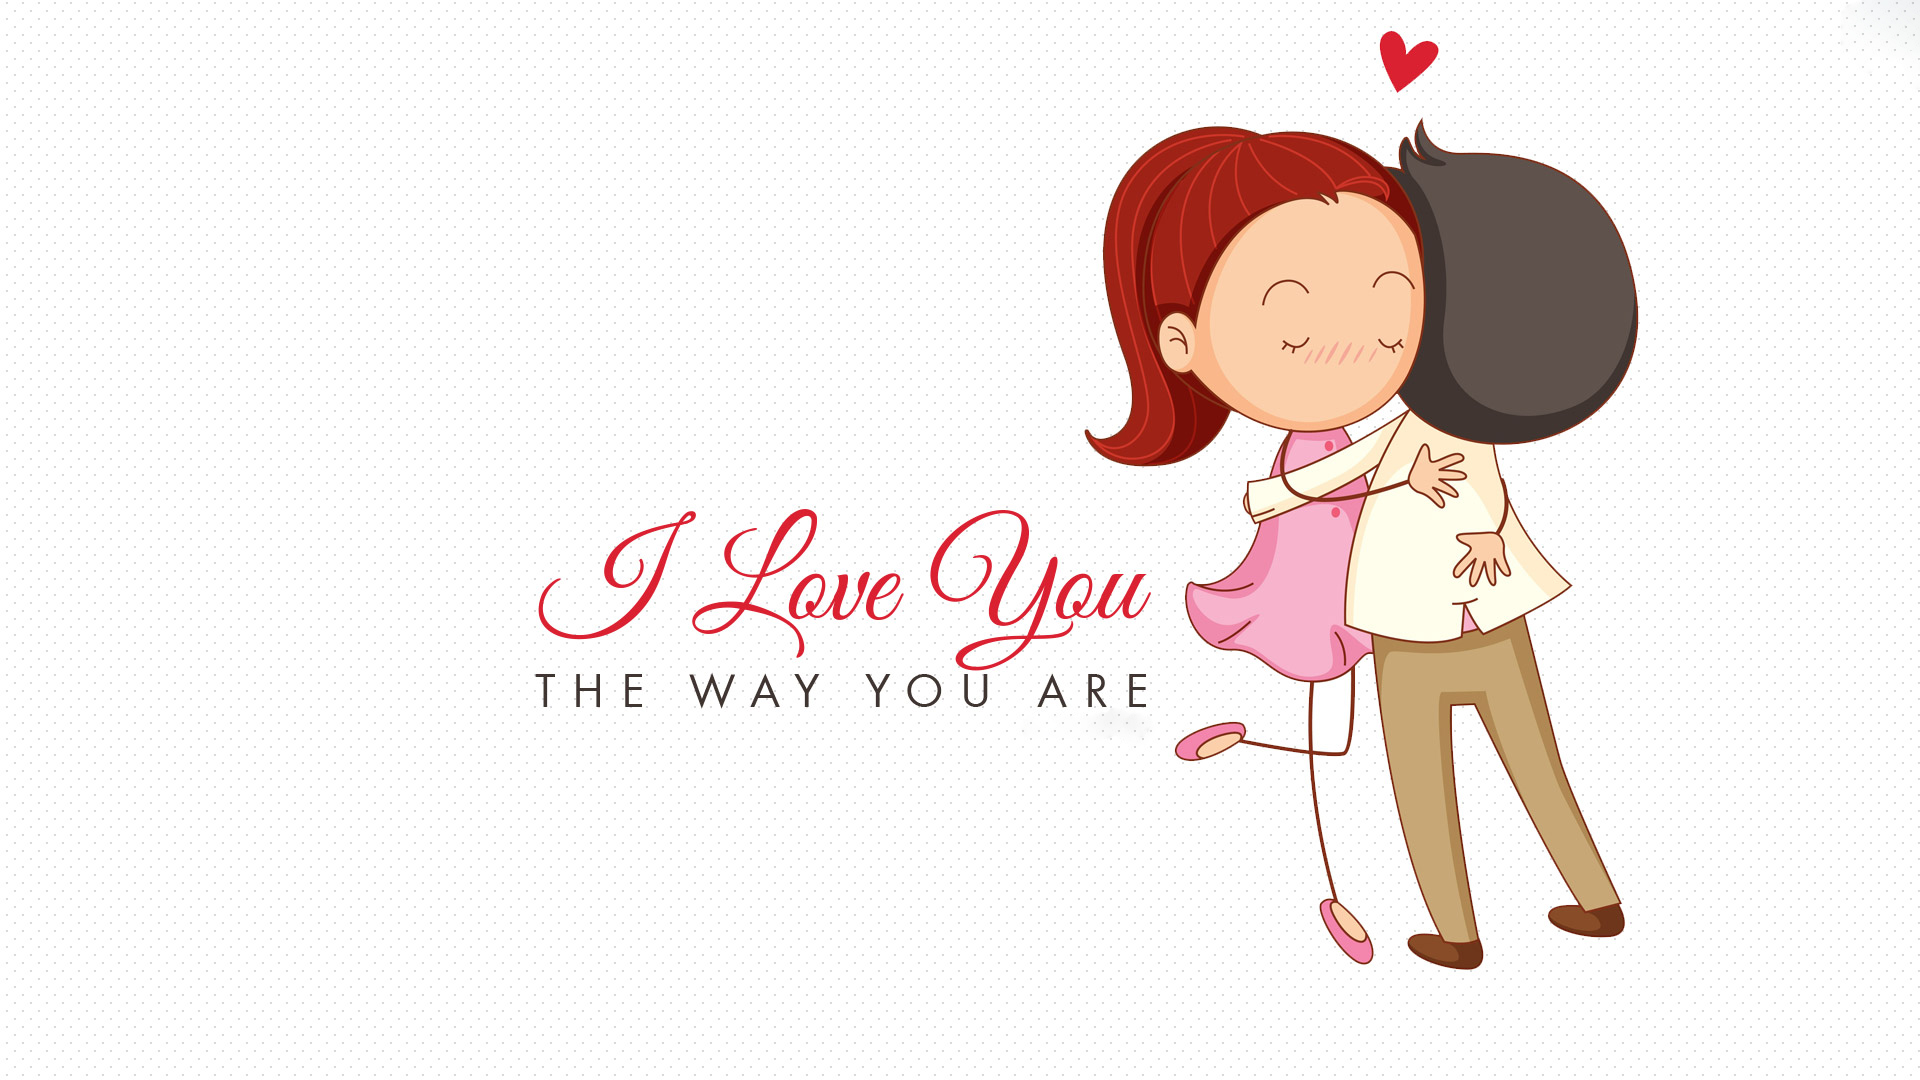 Wallpaper Fall In Love cartoon : Top 150+ Beautiful cute Romantic Love couple HD Wallpaper